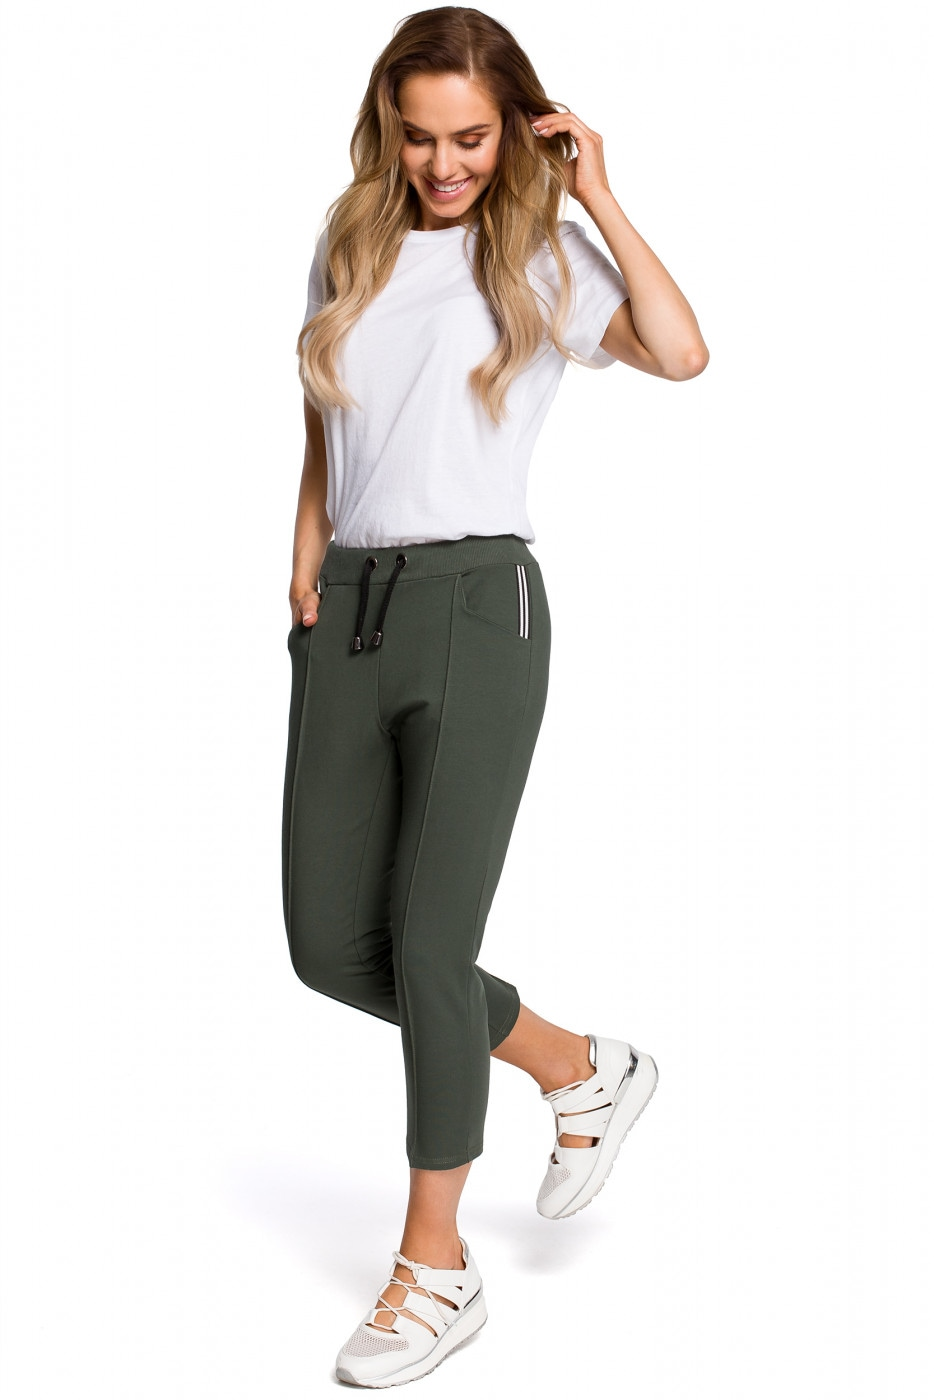 Made Of Emotion Woman's Pants M411